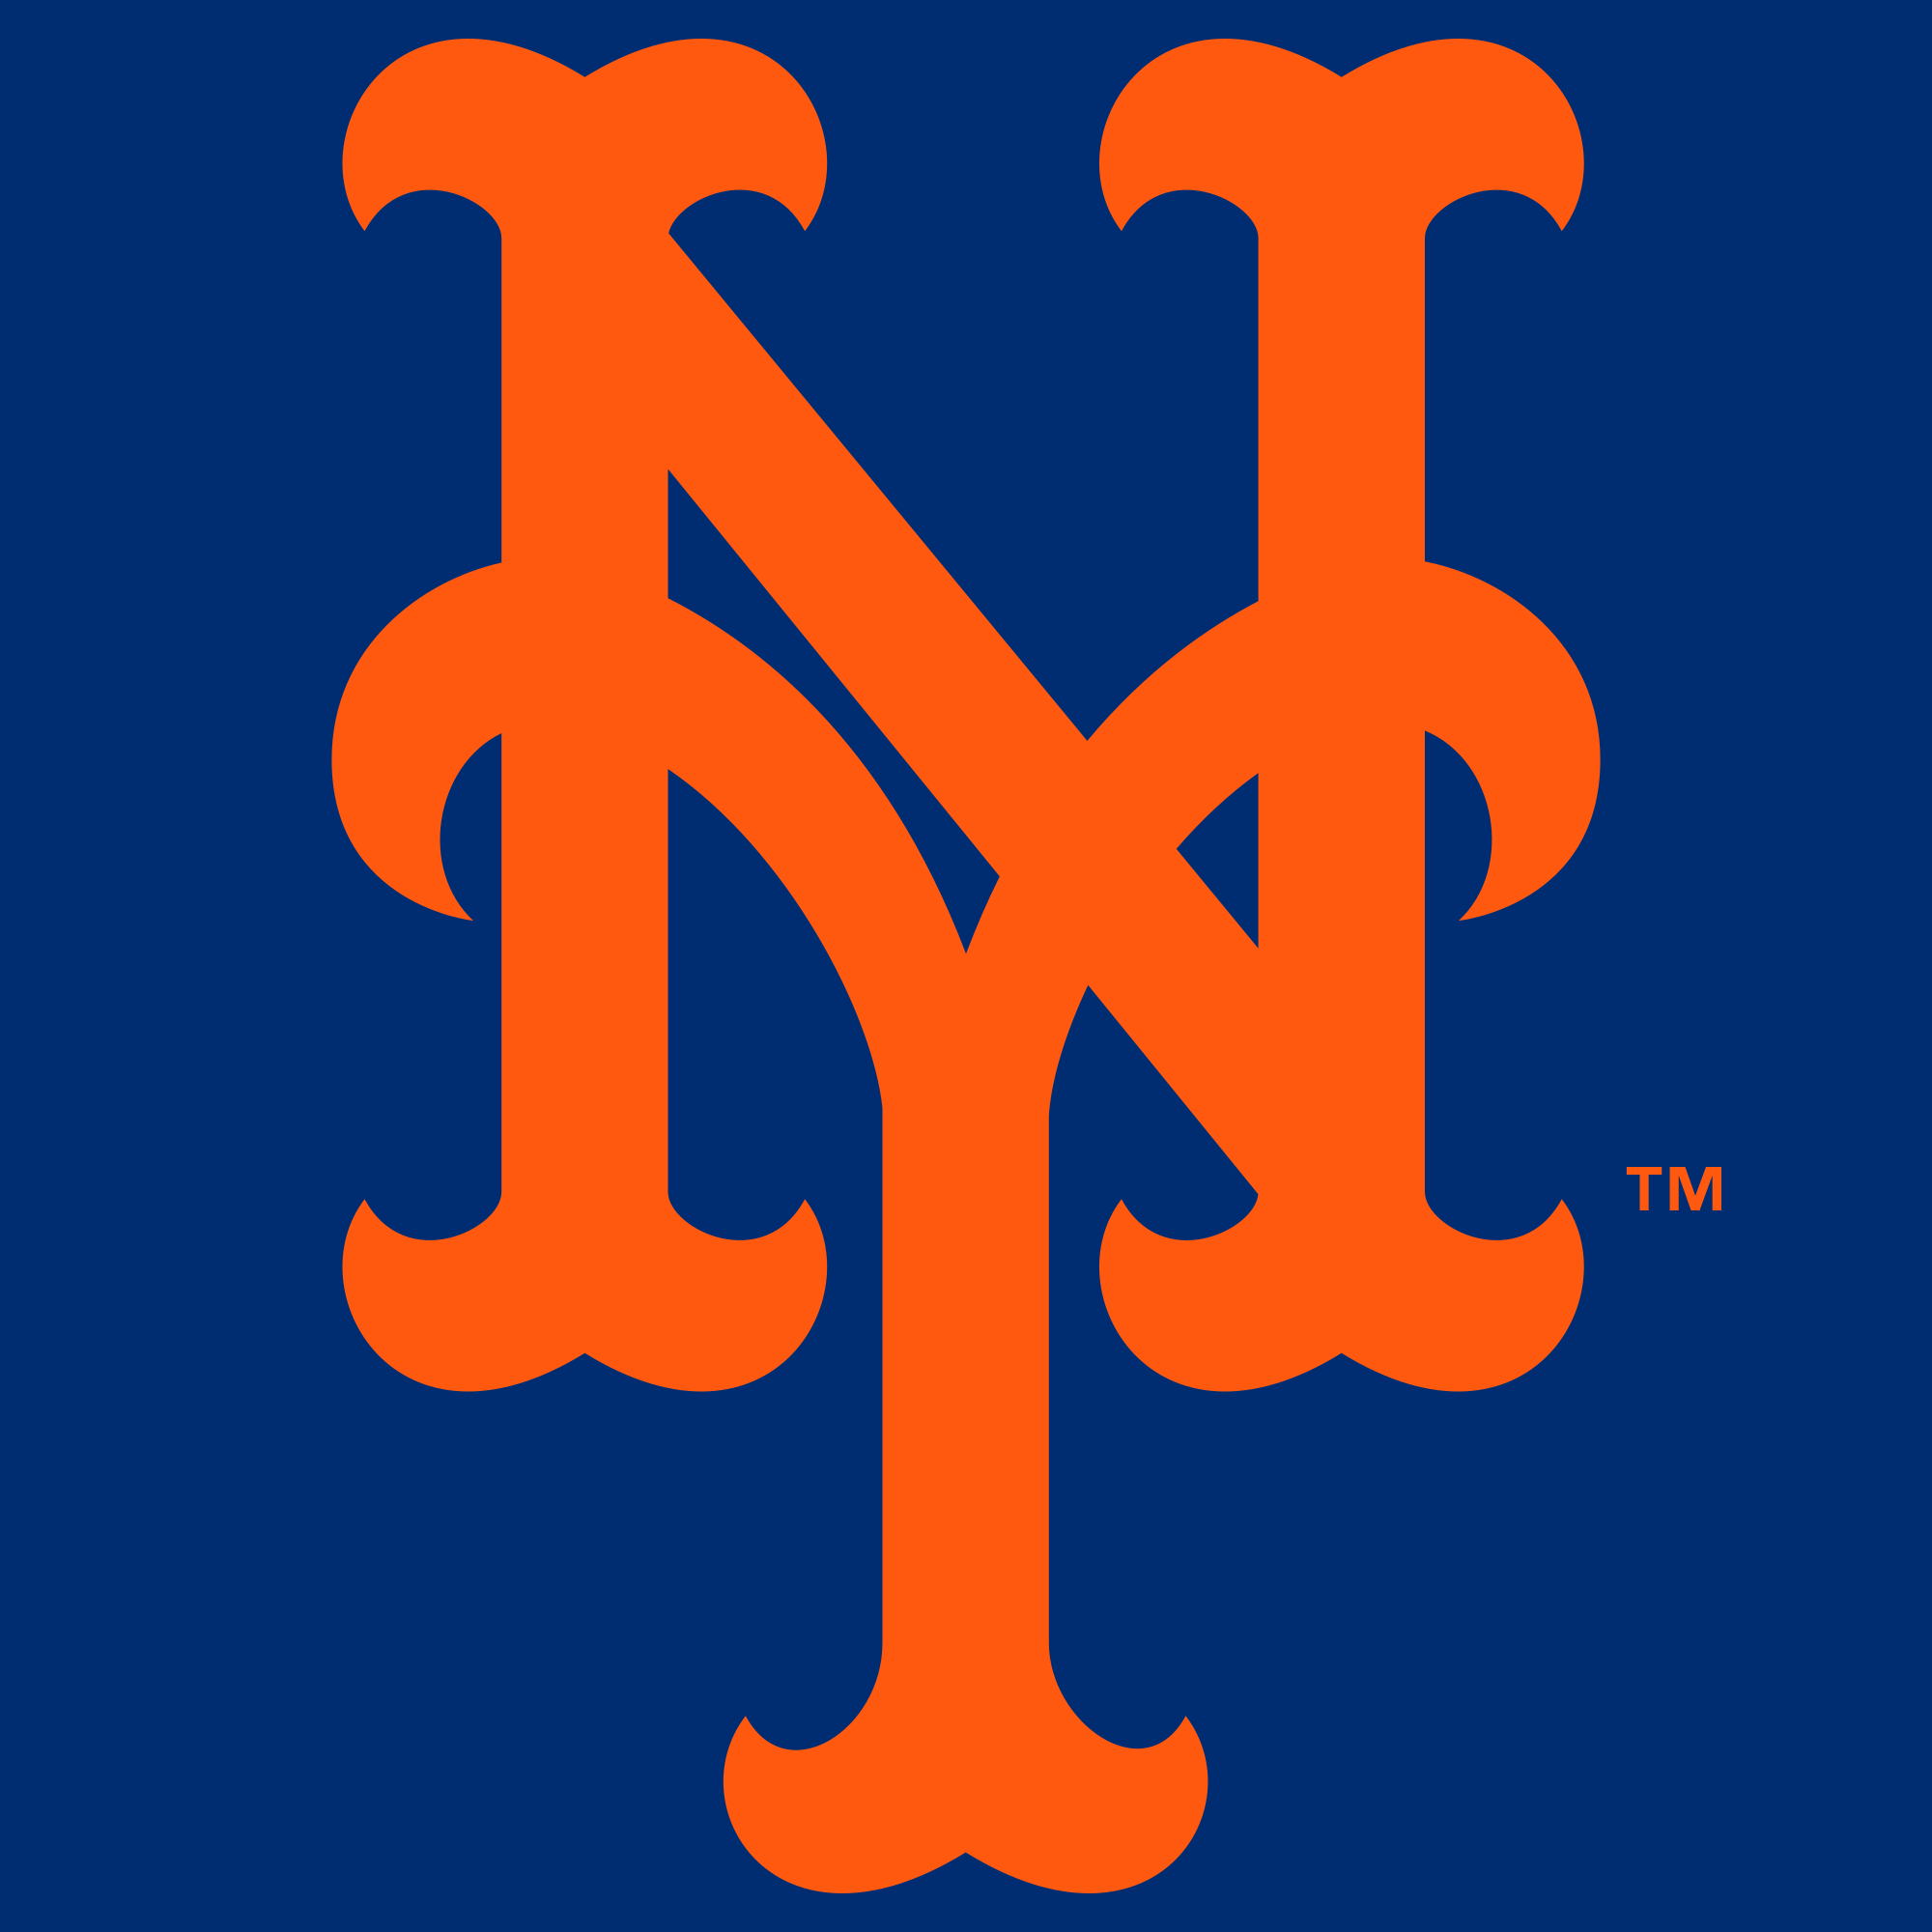 Open Hdpng.com  - New York Mets, Transparent background PNG HD thumbnail